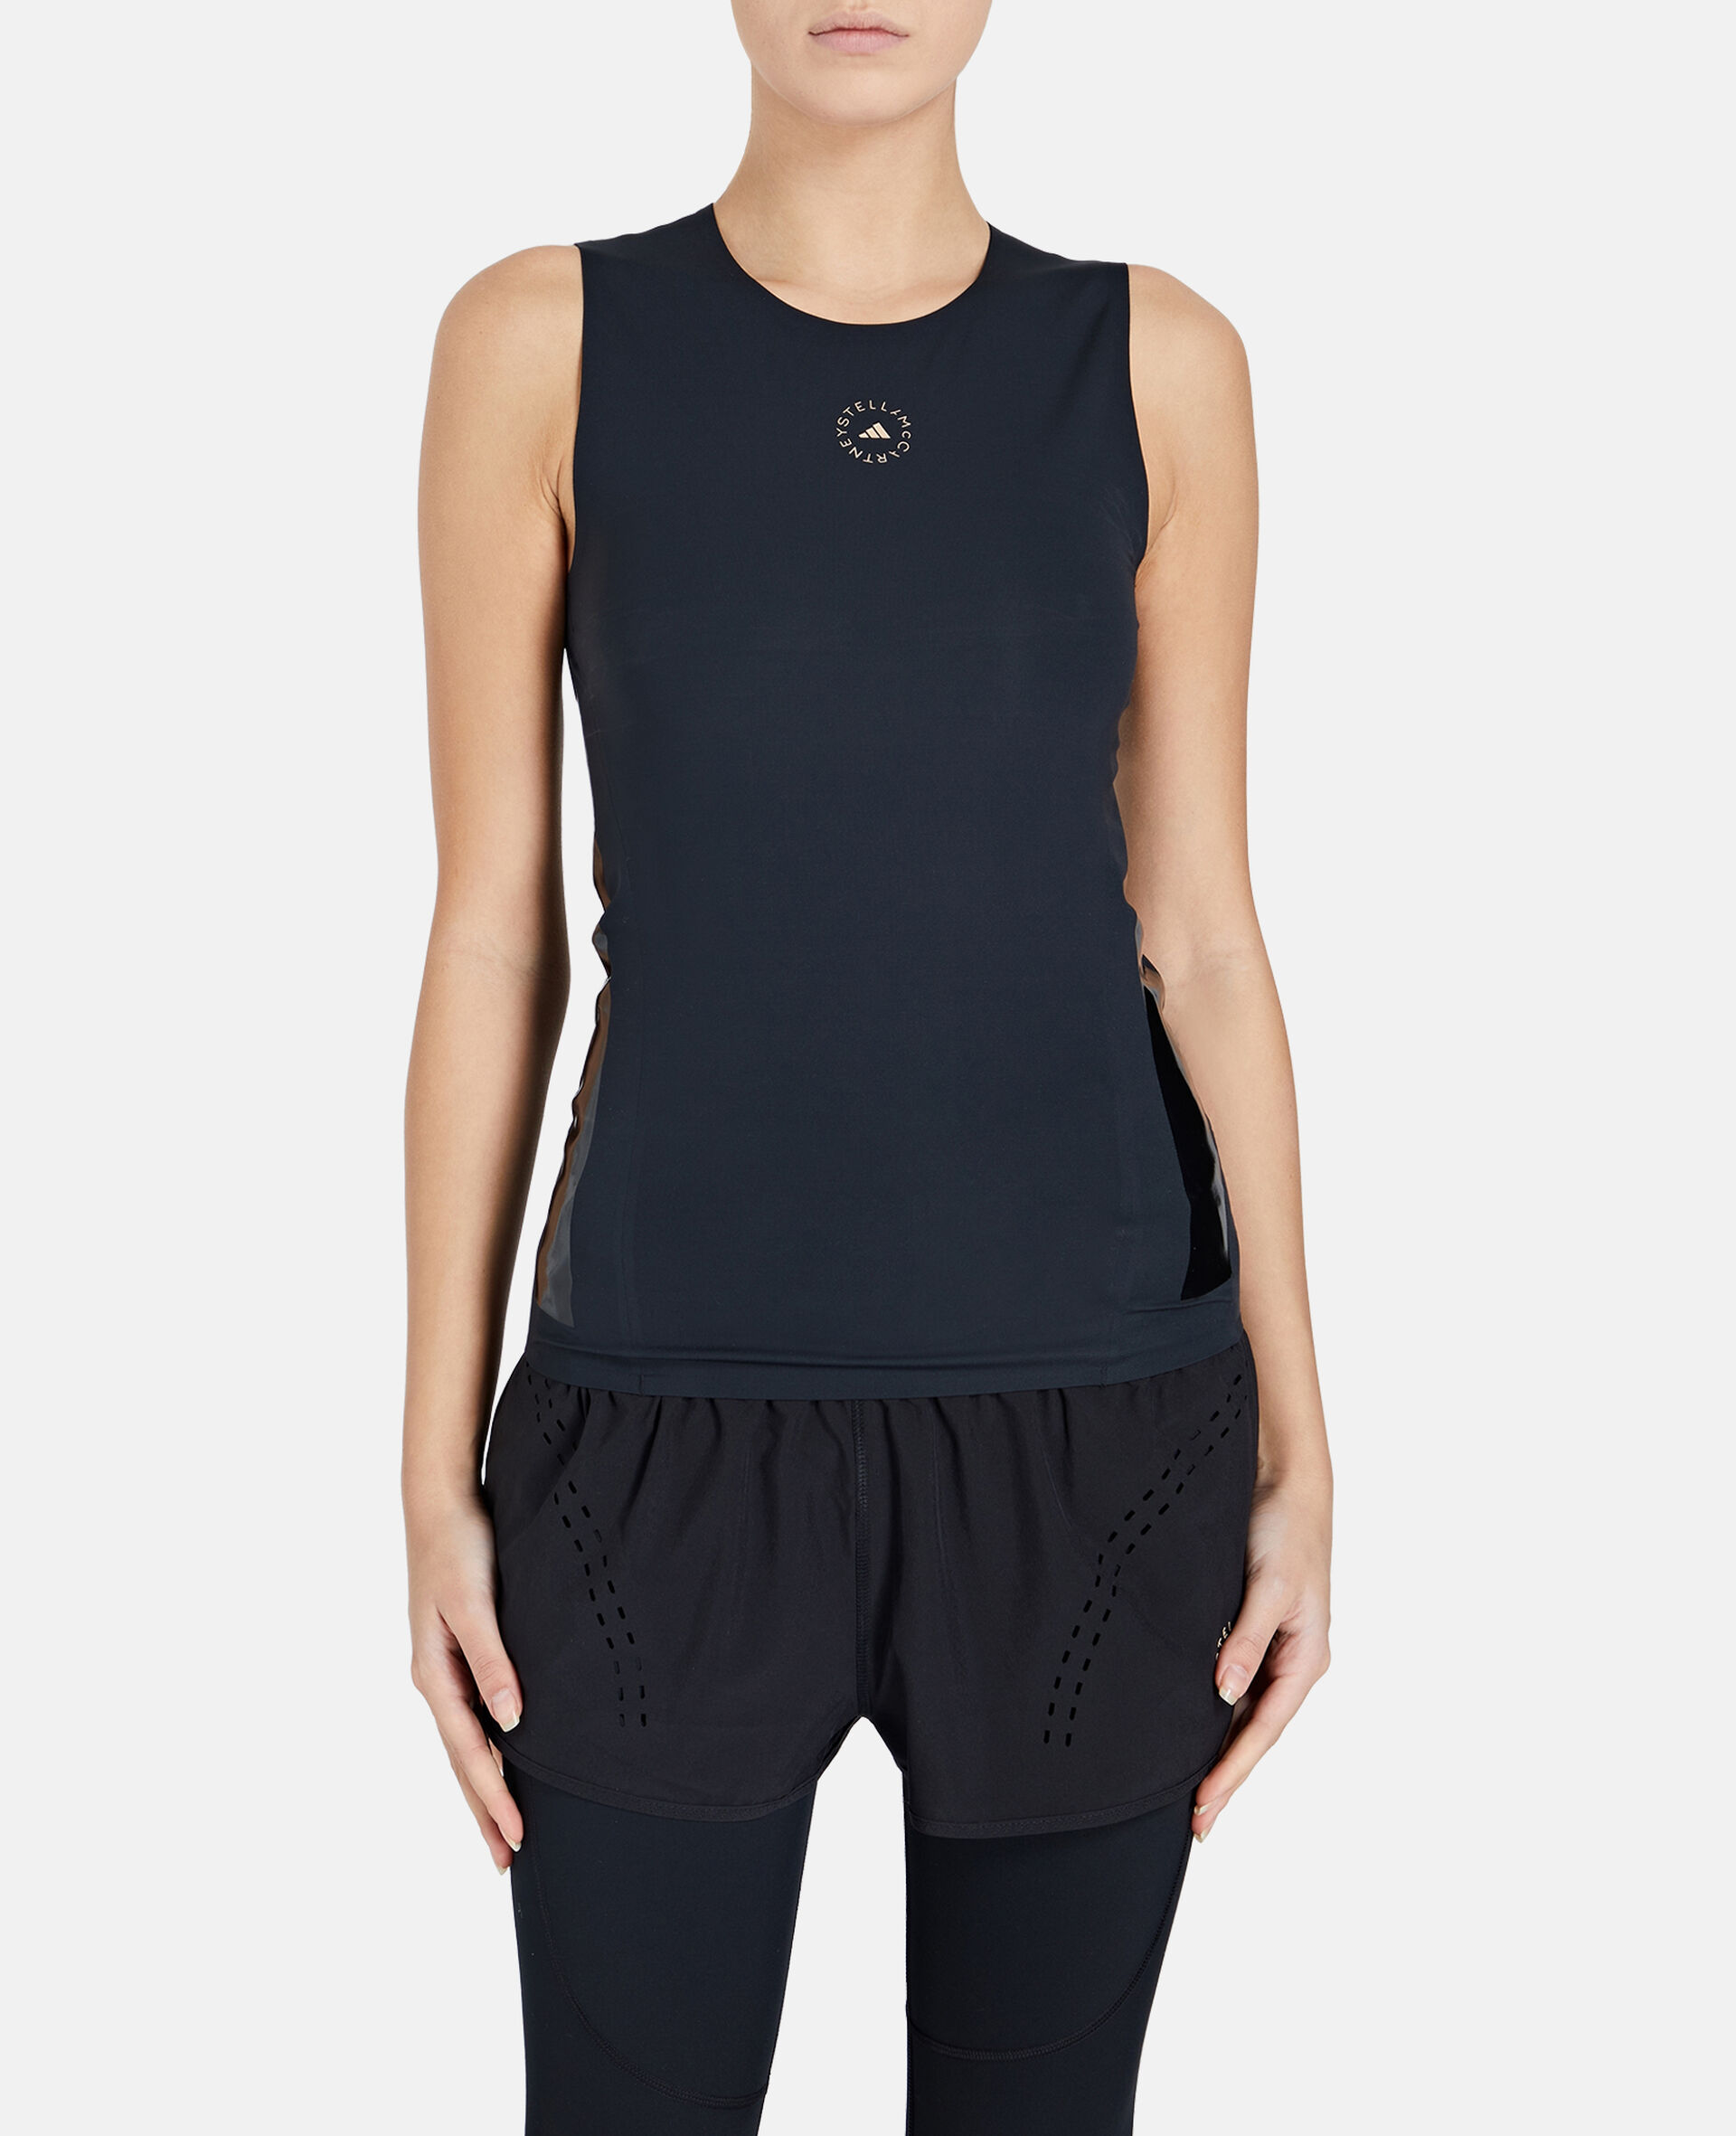 Black Training Tank Top-Black-large image number 4